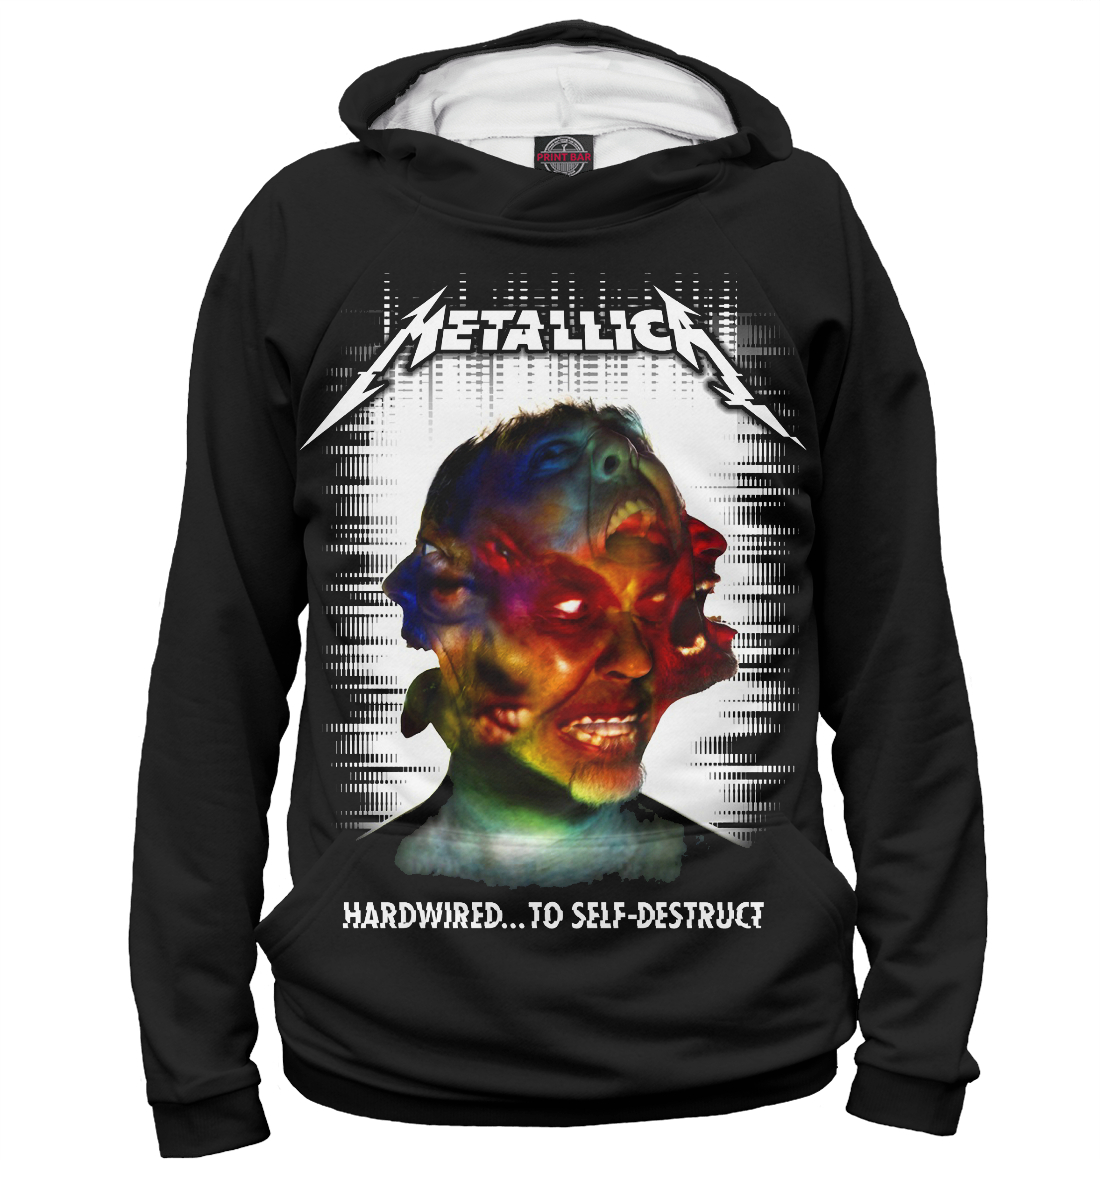 Metallica Hardwired...To Self-Destruct недорого